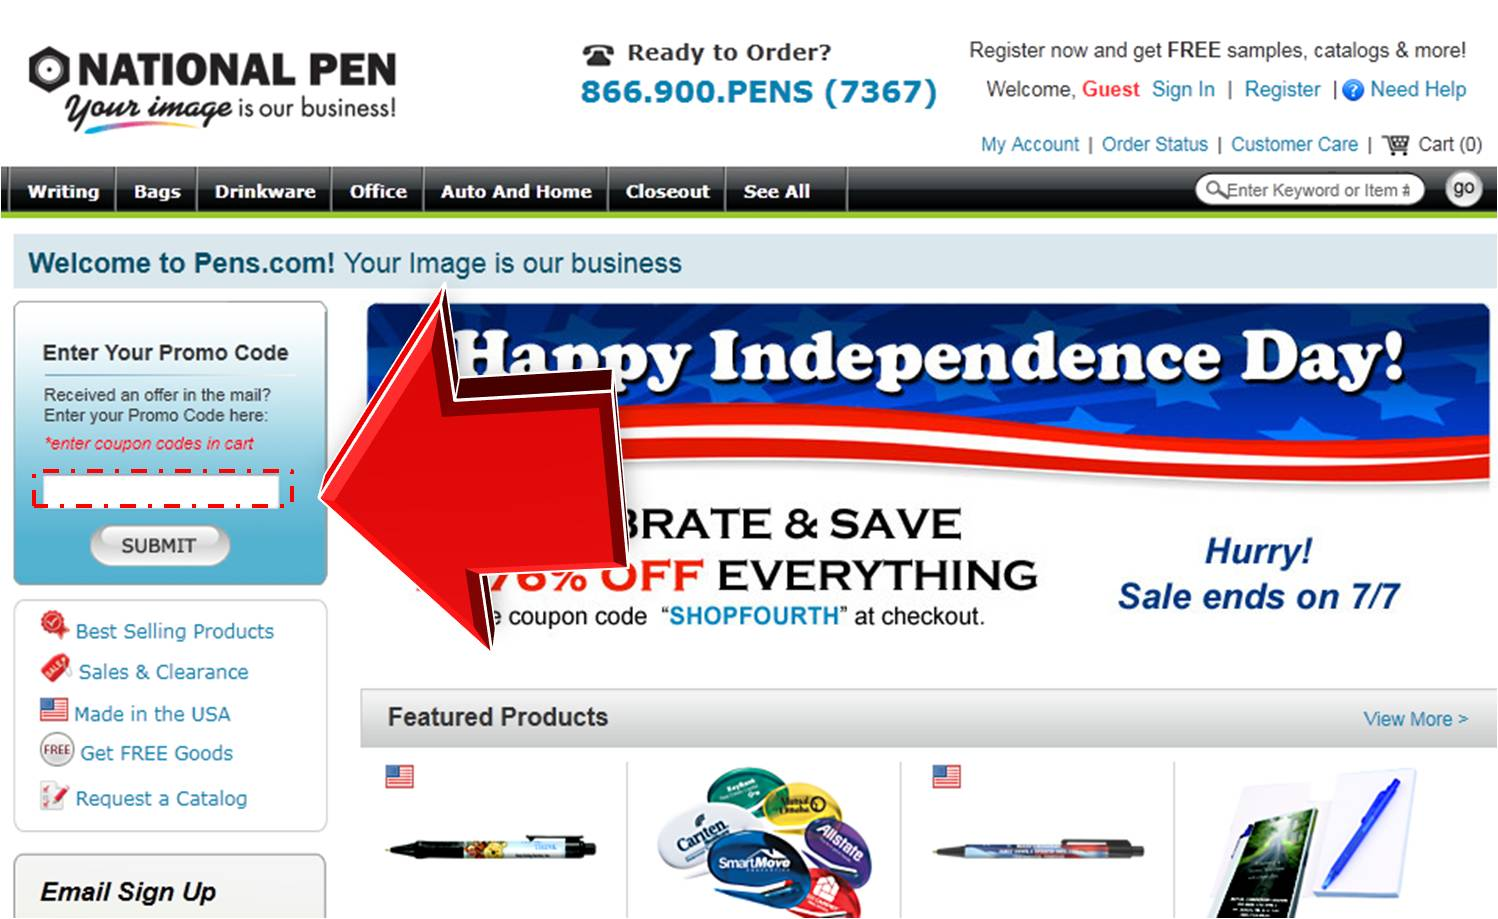 How to use a National Pen discount coupon code